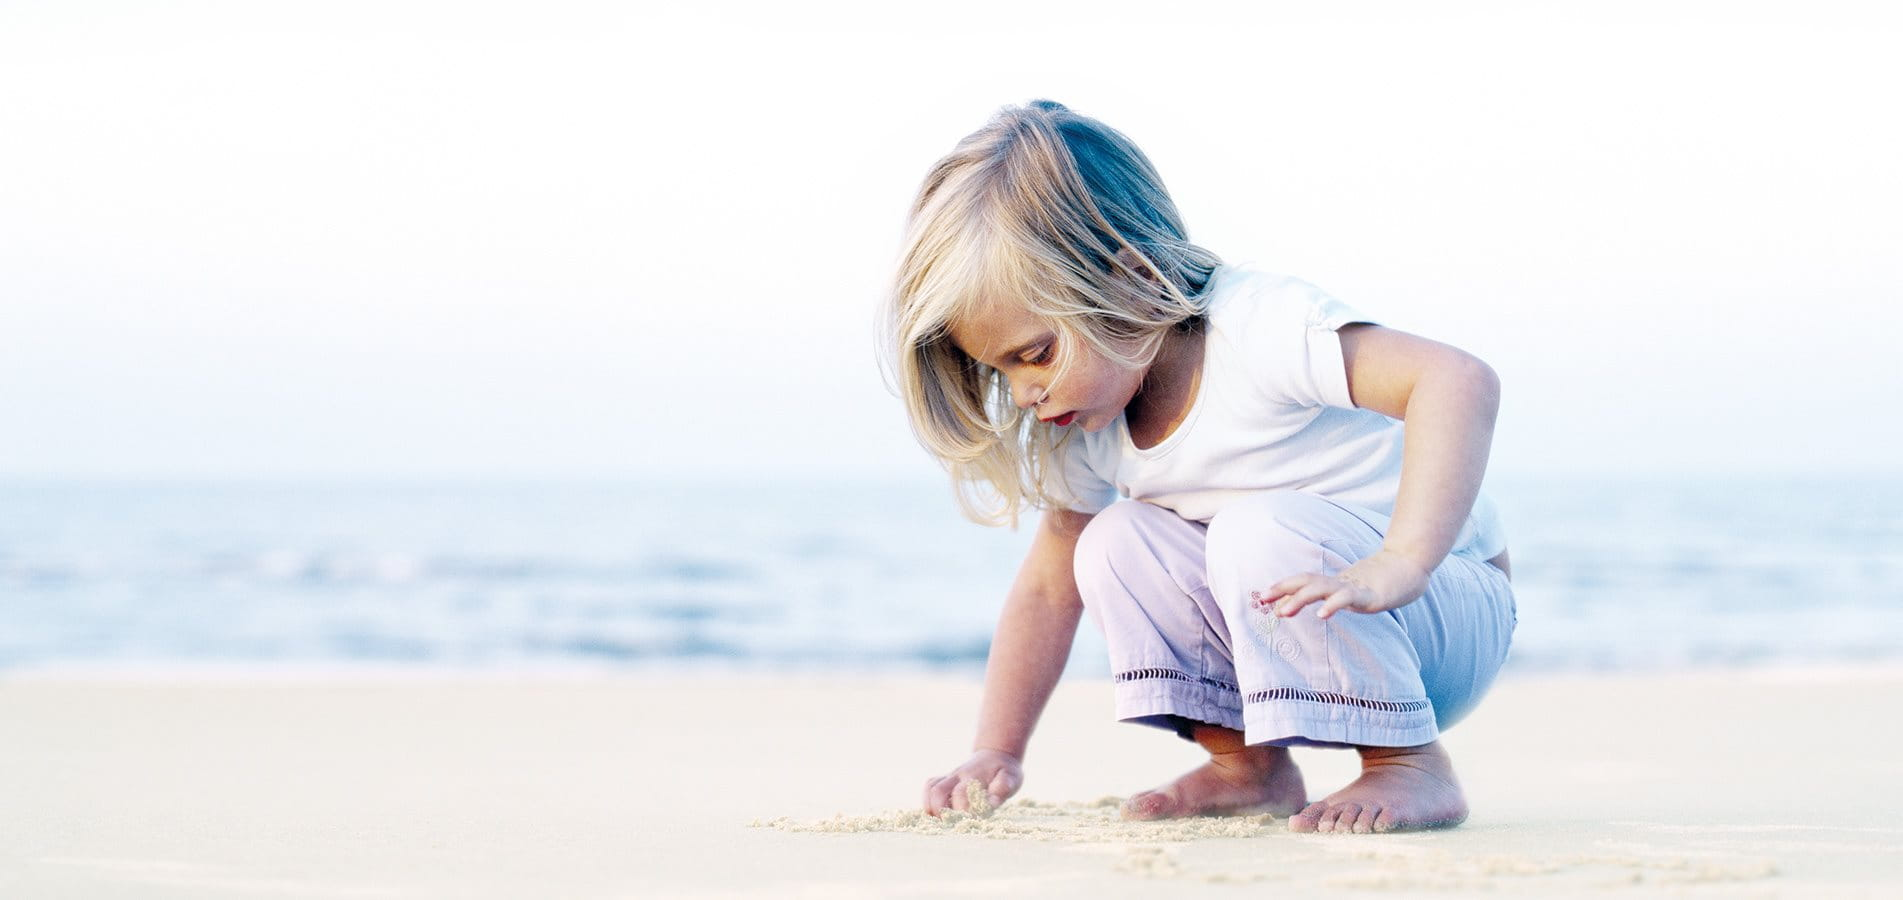 A little girl playing on the beach